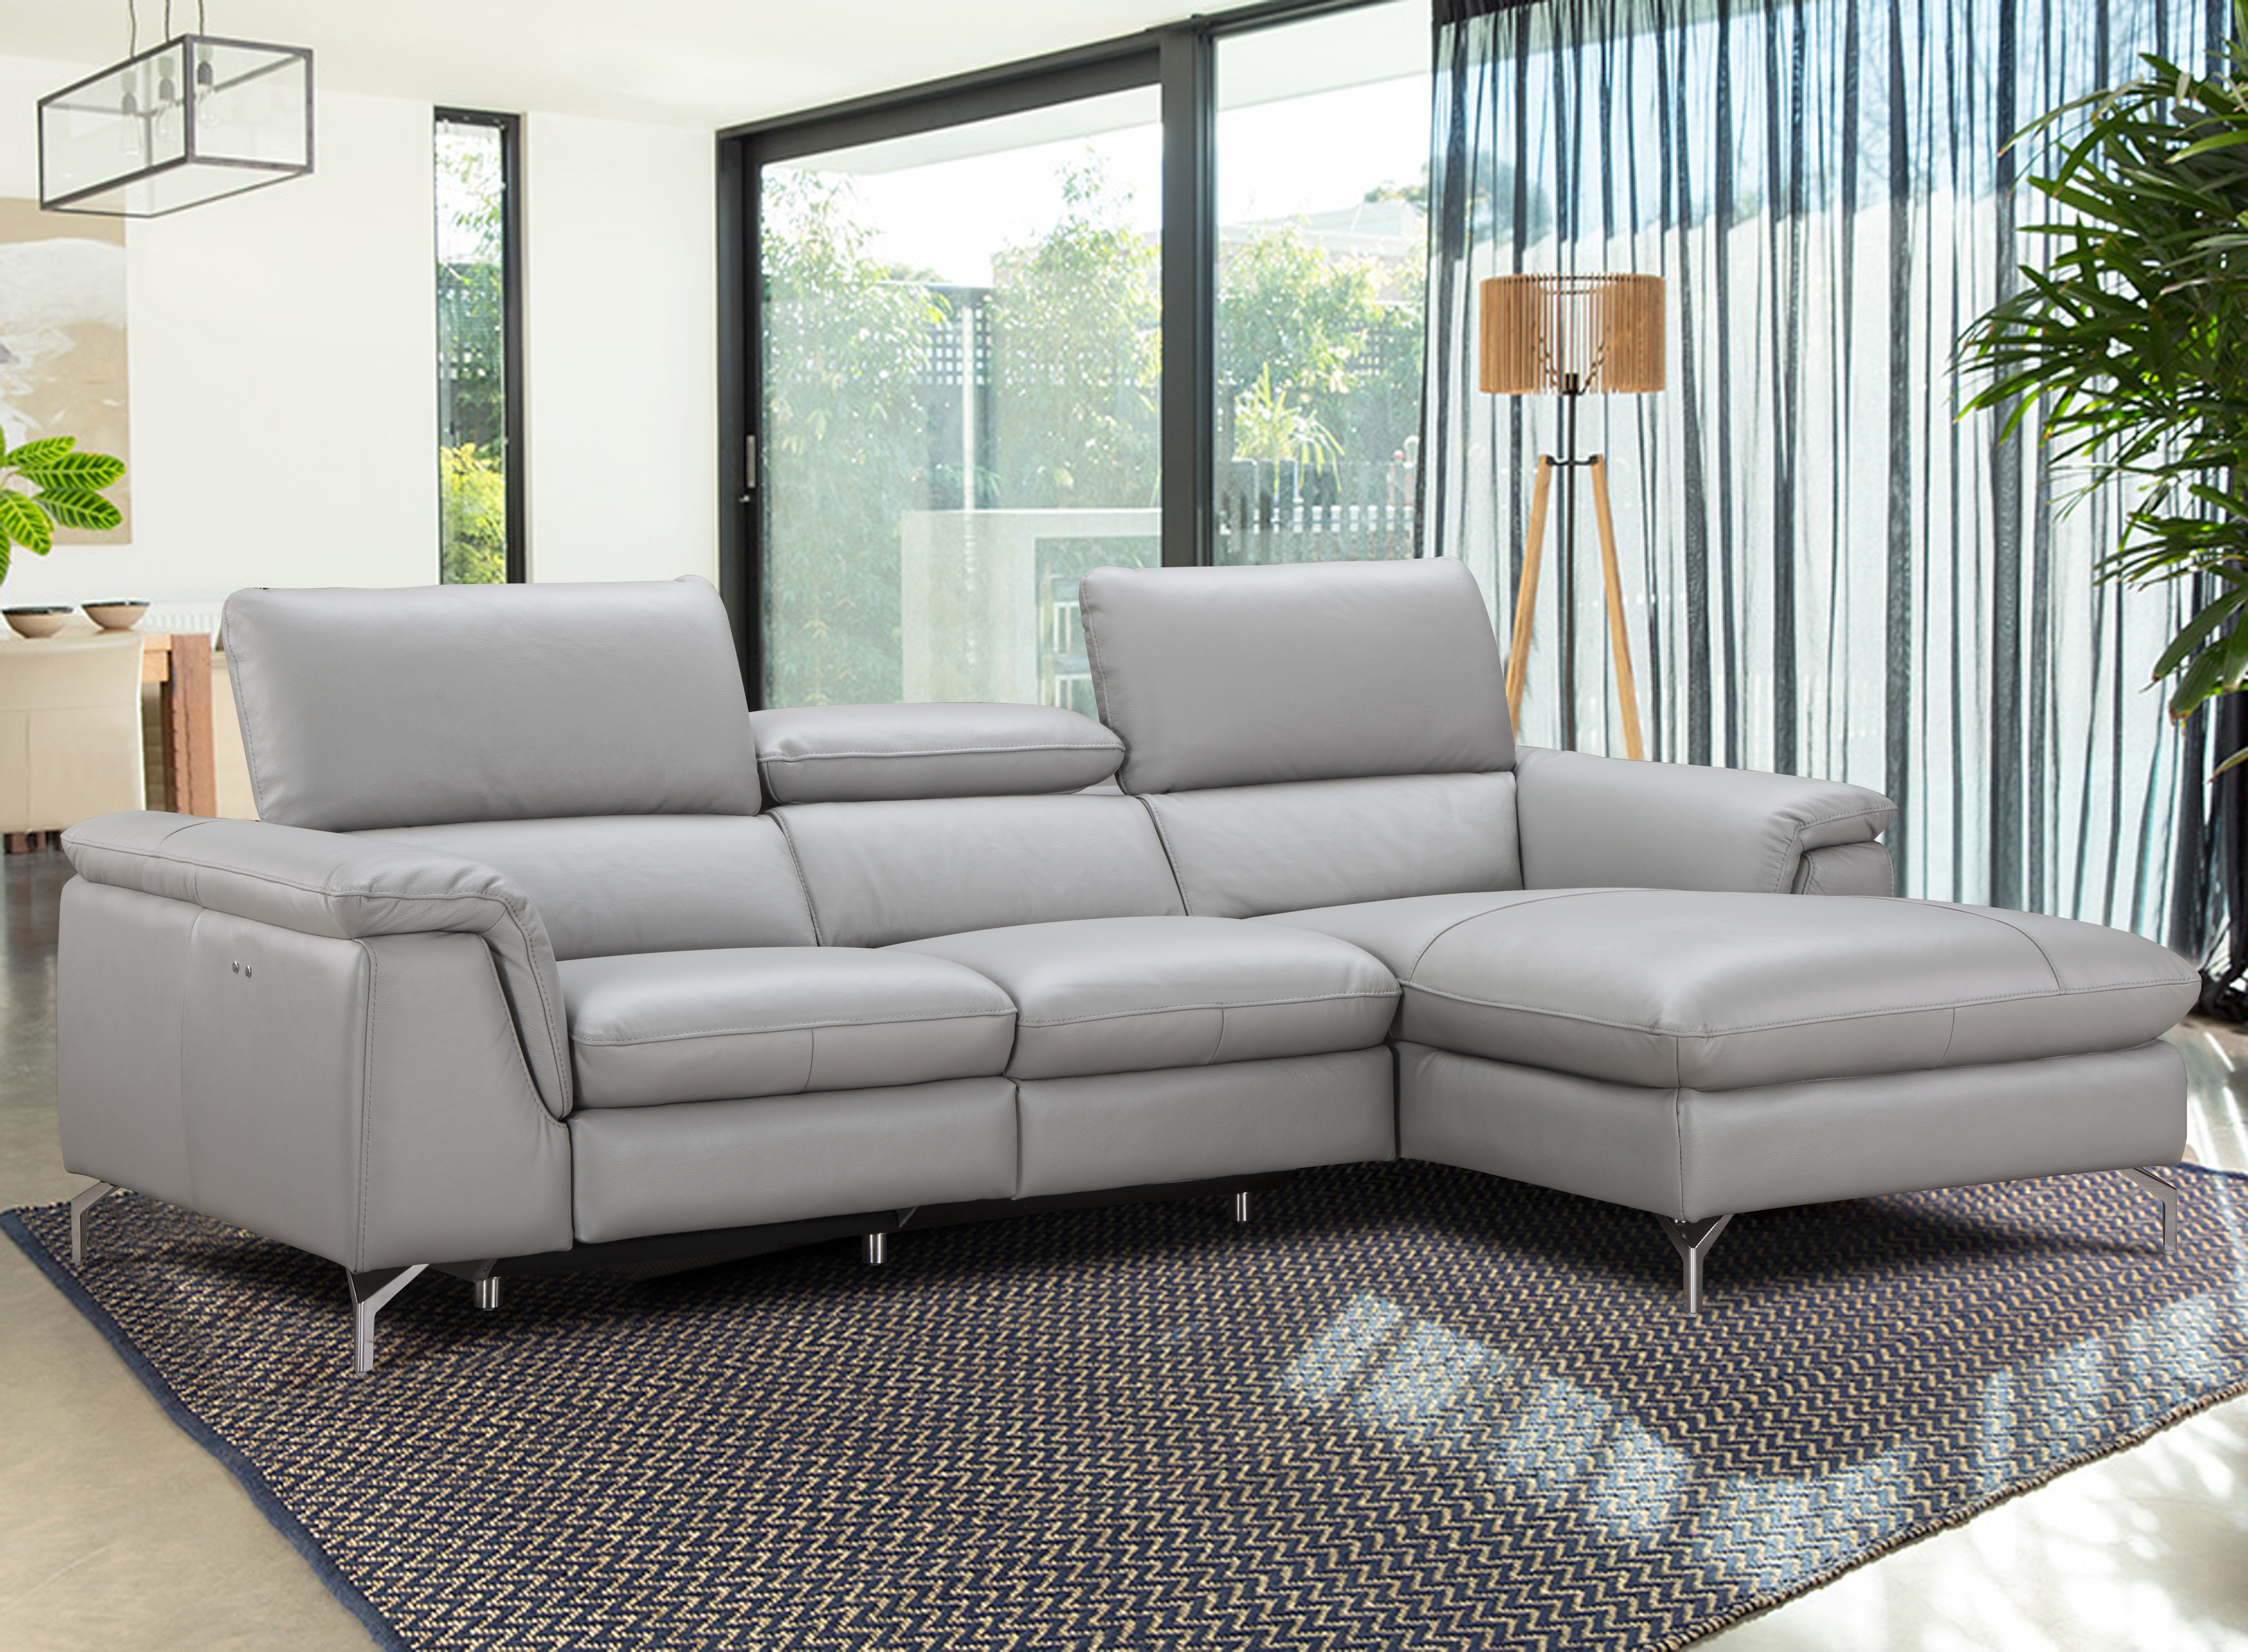 Most Recent Adeline 3 Piece Sectionals For J&m Furniture Serena Leather Reclining Sectional & Reviews (View 14 of 20)